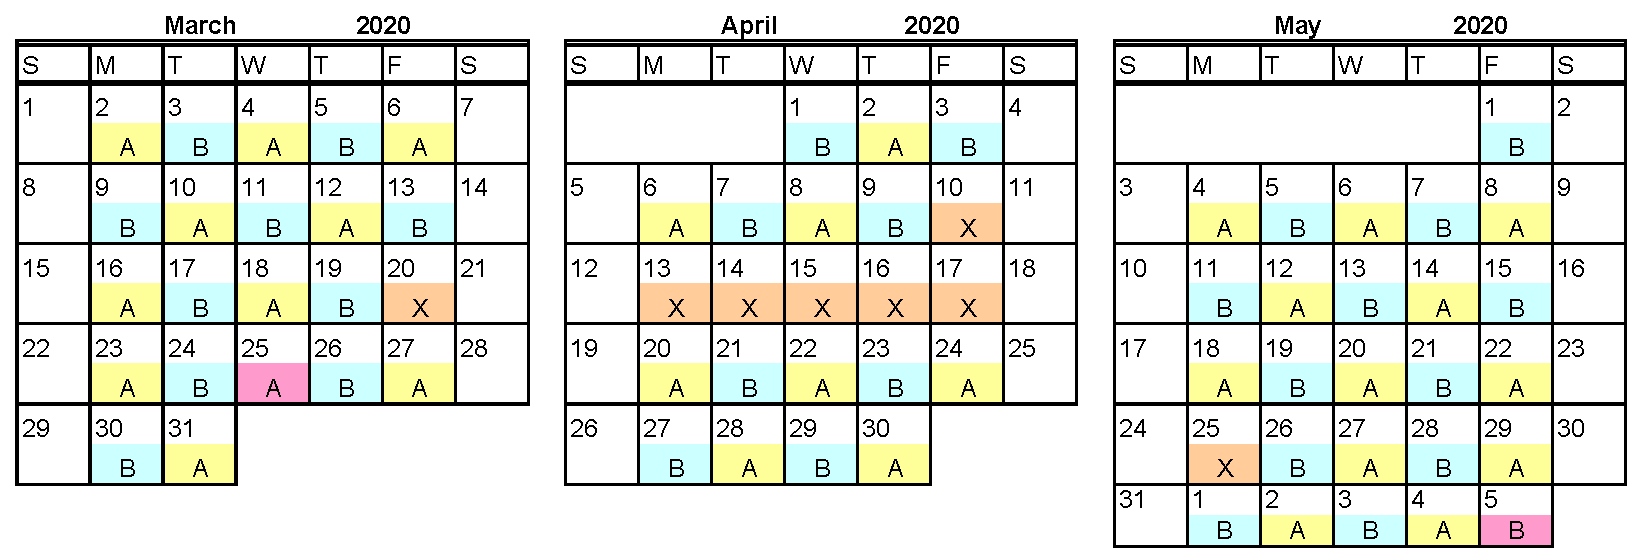 2020 AB Mar Apr May